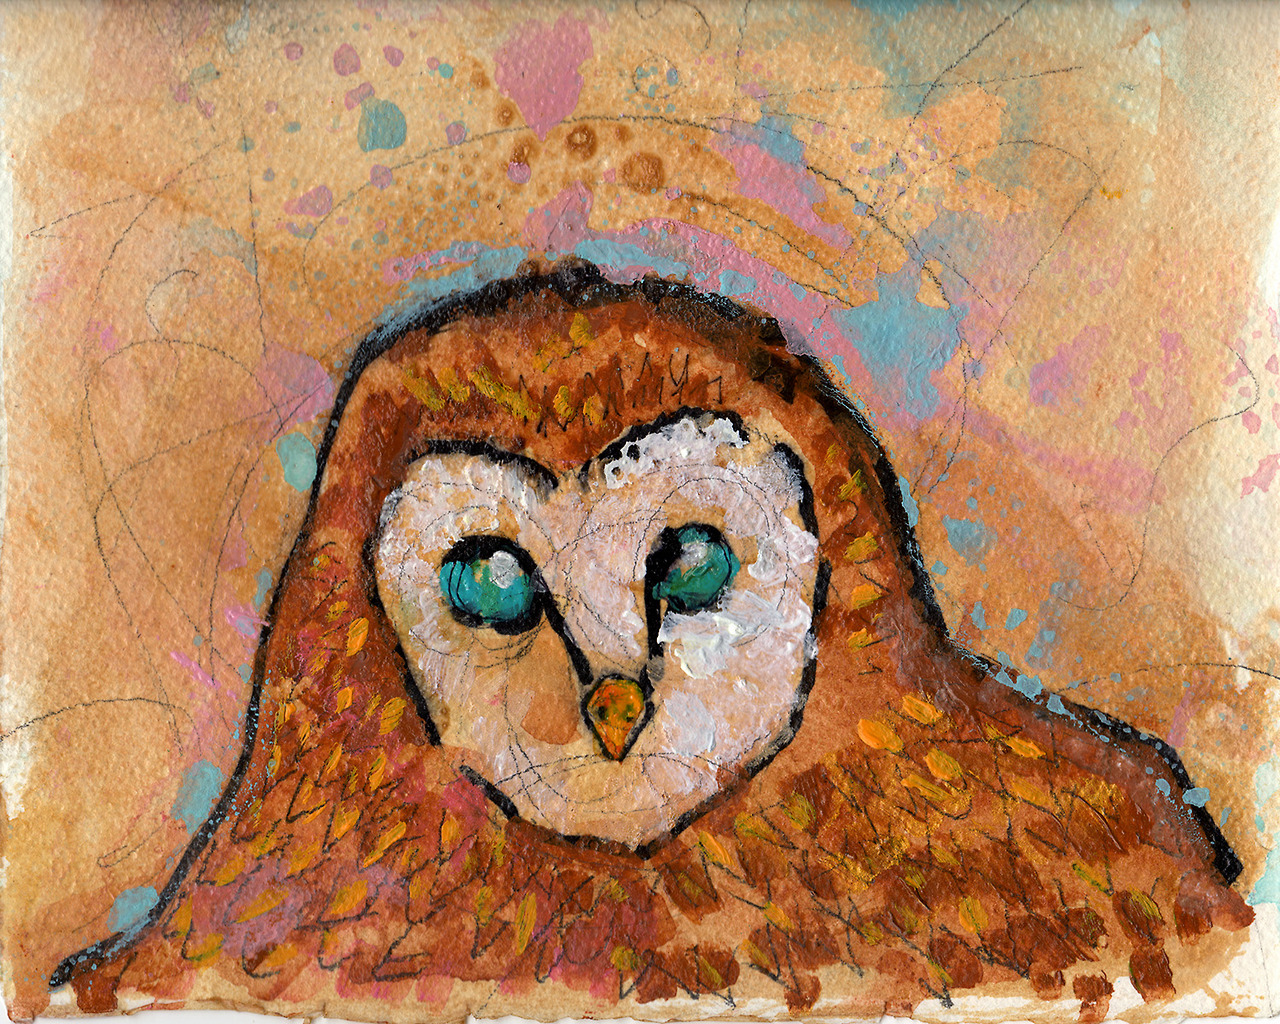 """2/2/2013. I really, really want bacon and eggs right about now. Anyway, here's art. Owl Up in Your Business. 10"""" x 8"""" acrylic, shellac, marker, pencil, clear spray paint on watercolor paper."""